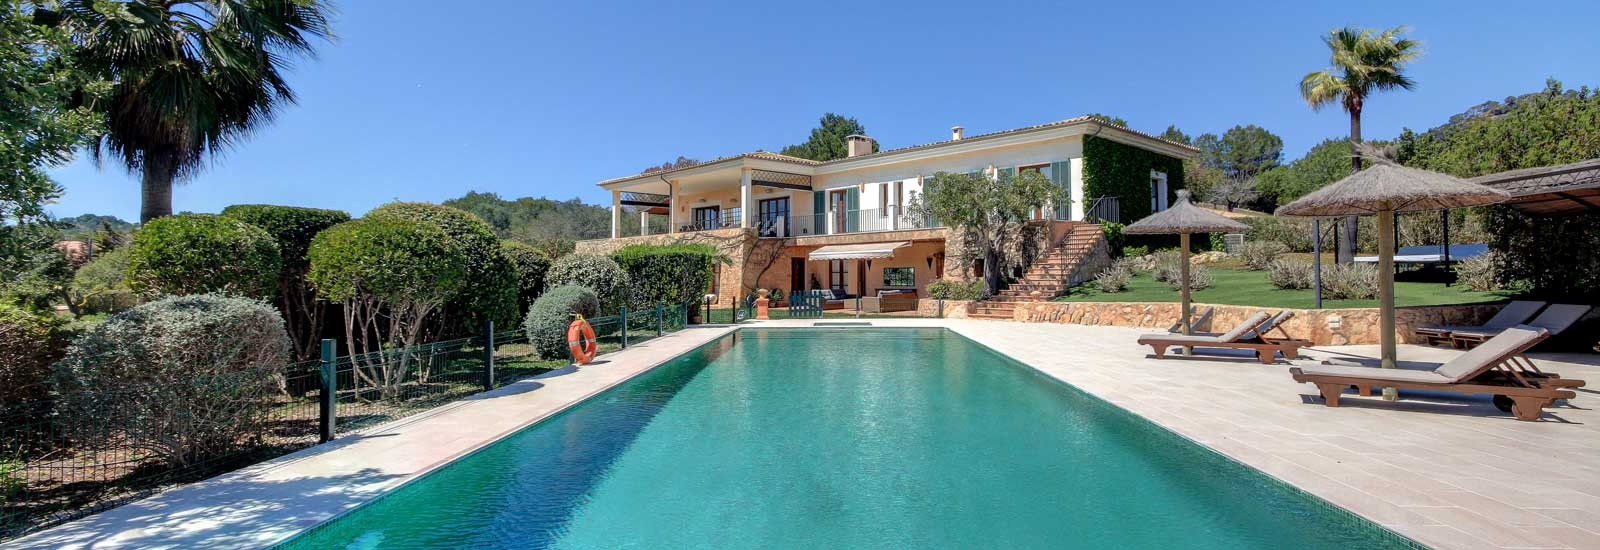 Luxury Villas Alcudia Sale